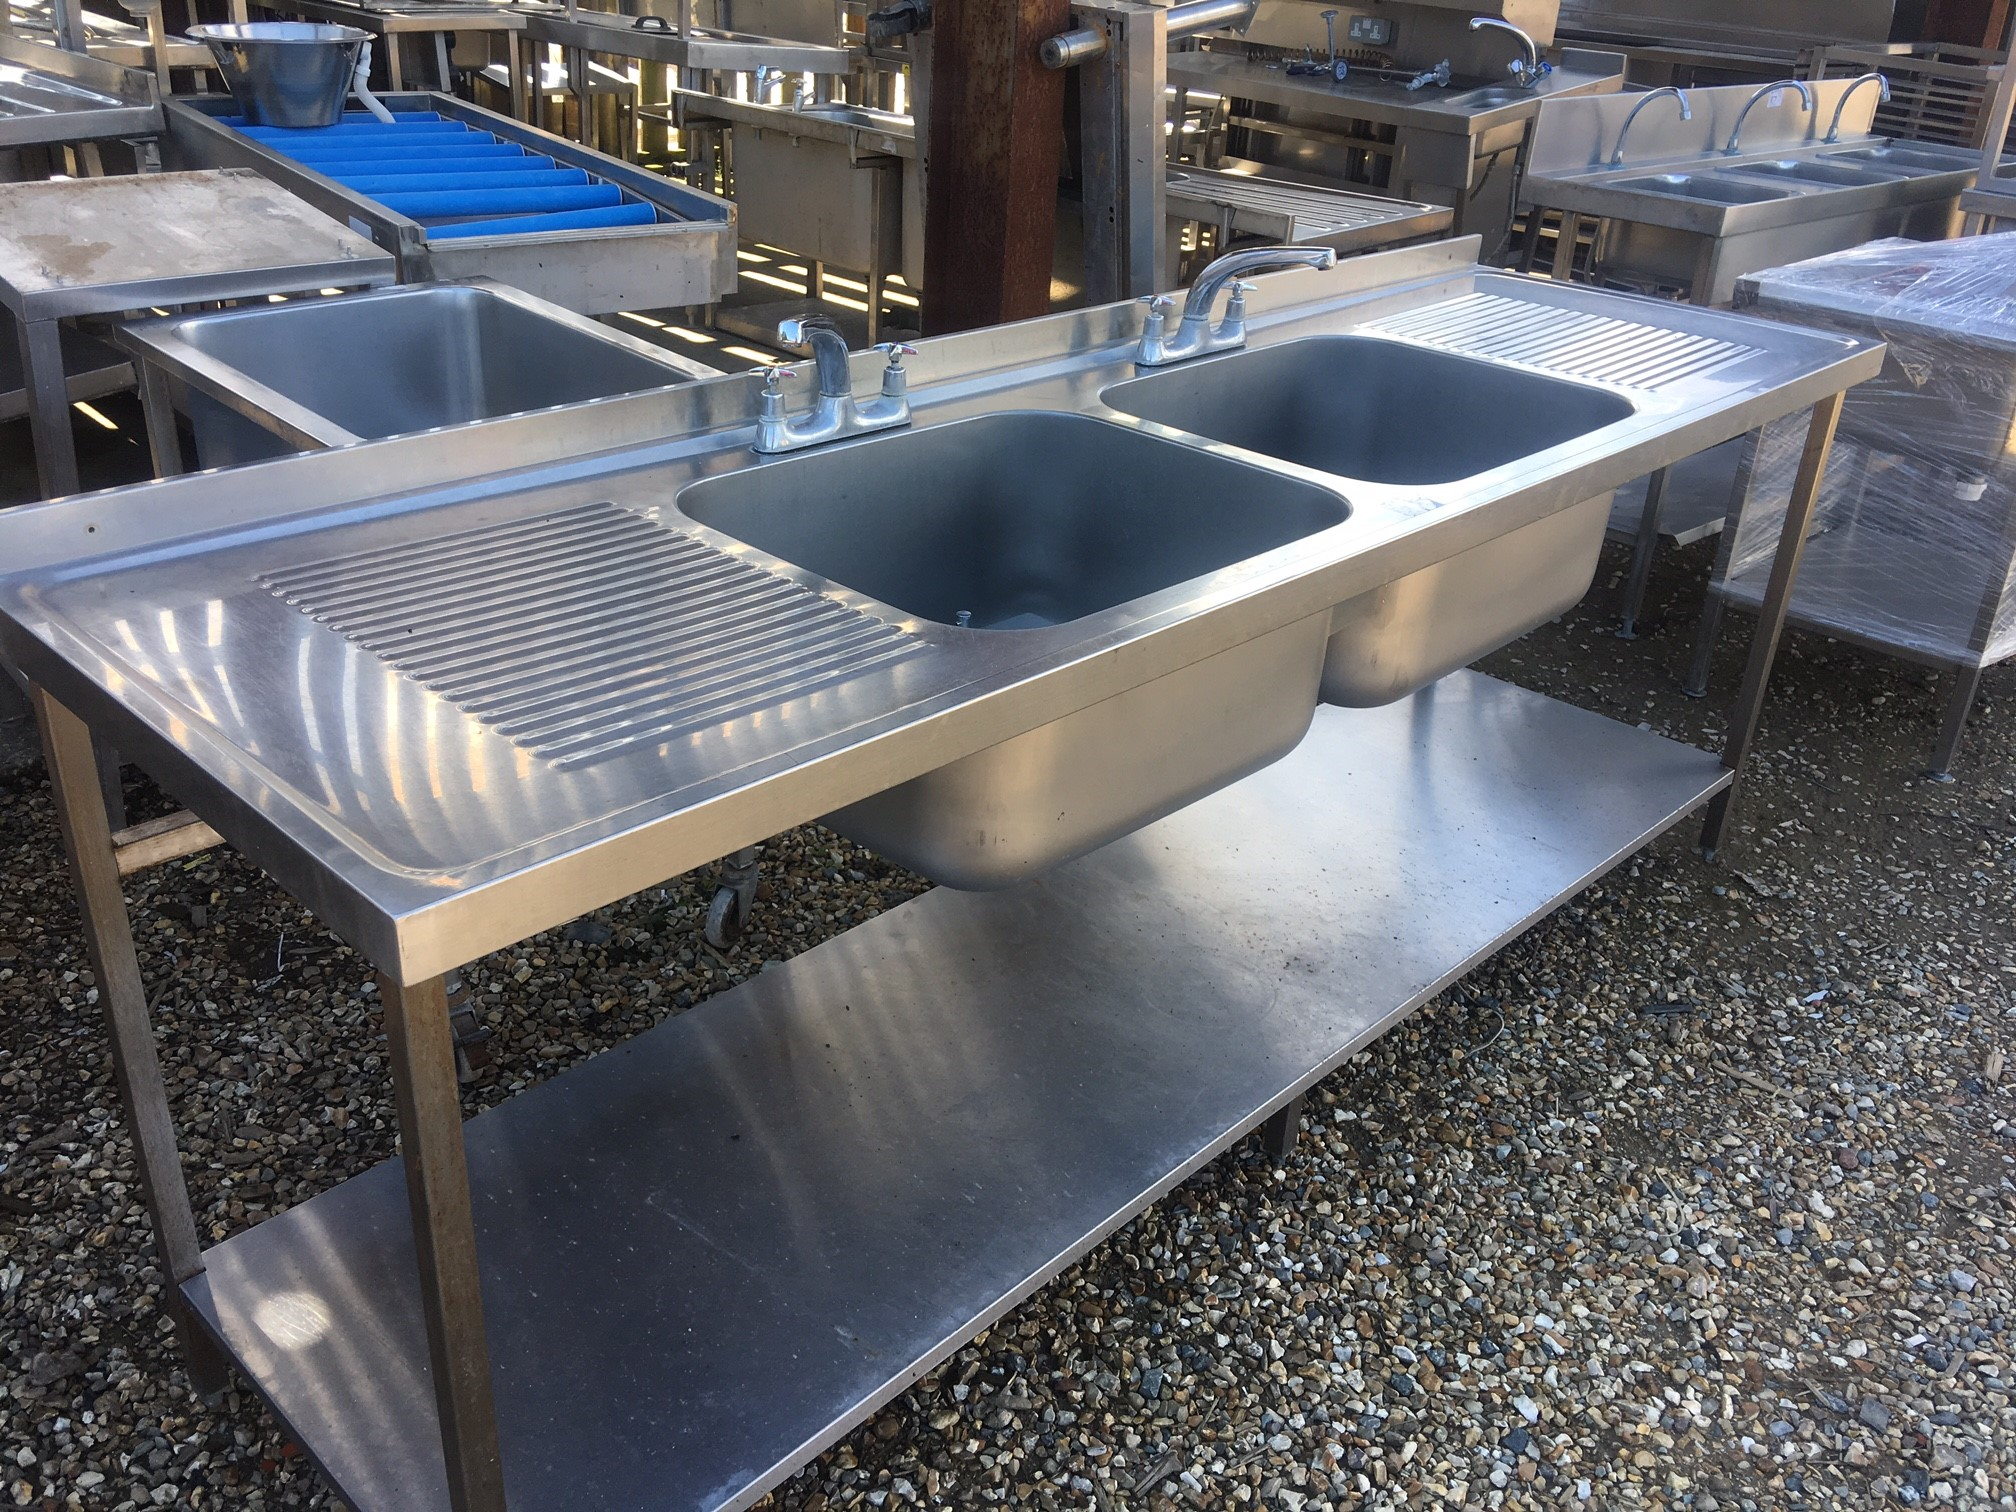 Stainless Steel Commercial Sink With Double Bowls